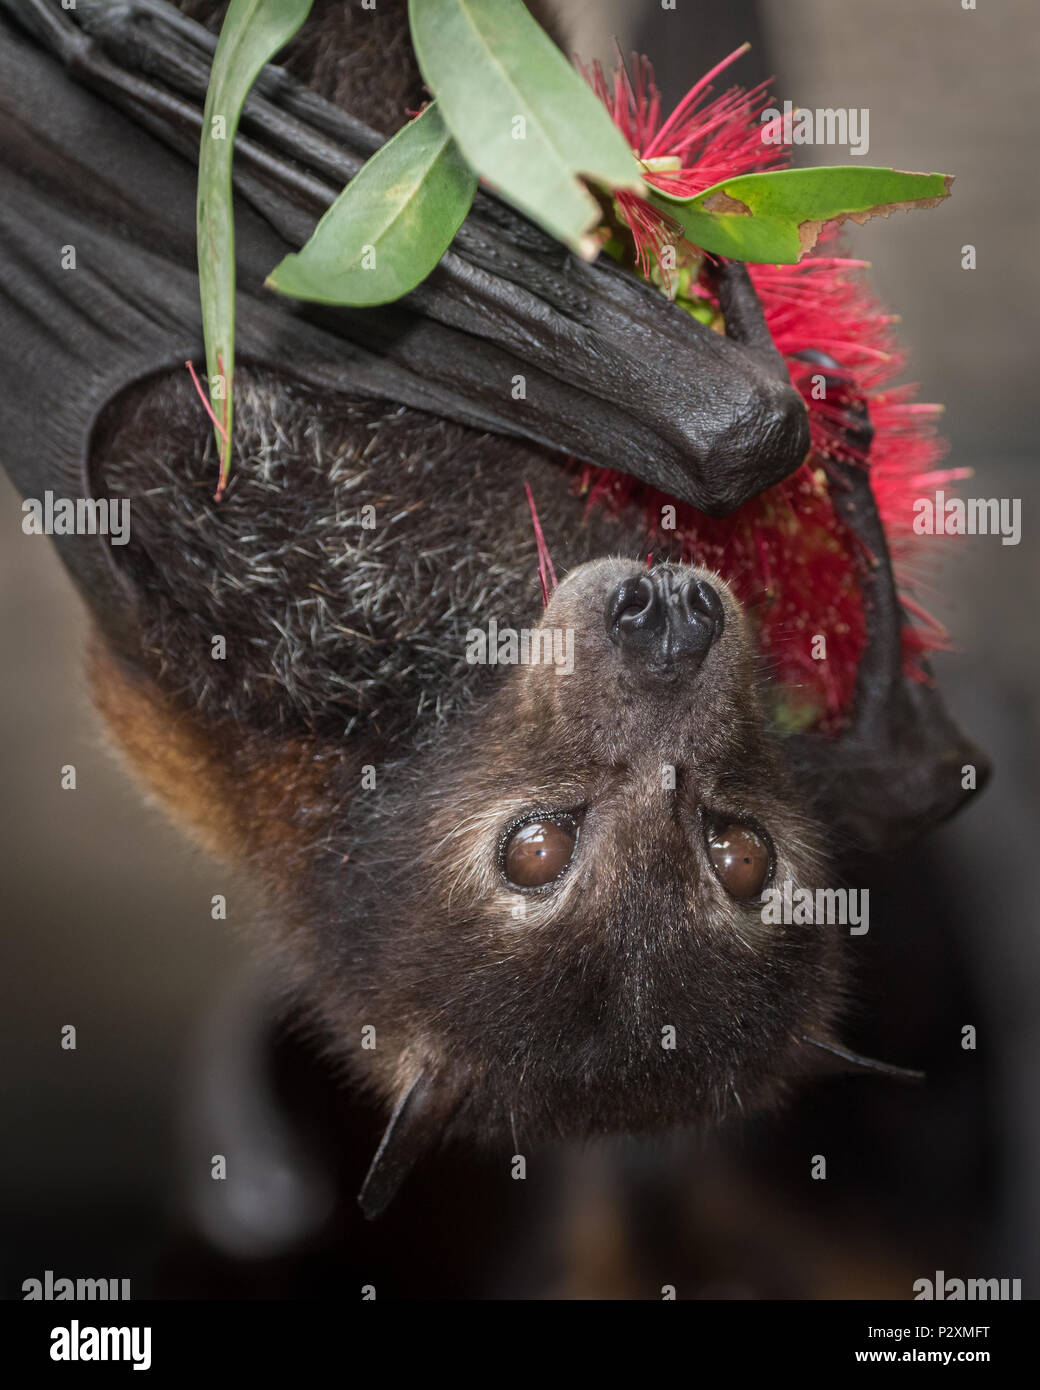 A rescued Black Flying Fox named Xena enjoys bottlebrush at a wildlife rescue centre in Kuranda, Queensland.  Flying foxes are keystone pollinators. Stock Photo